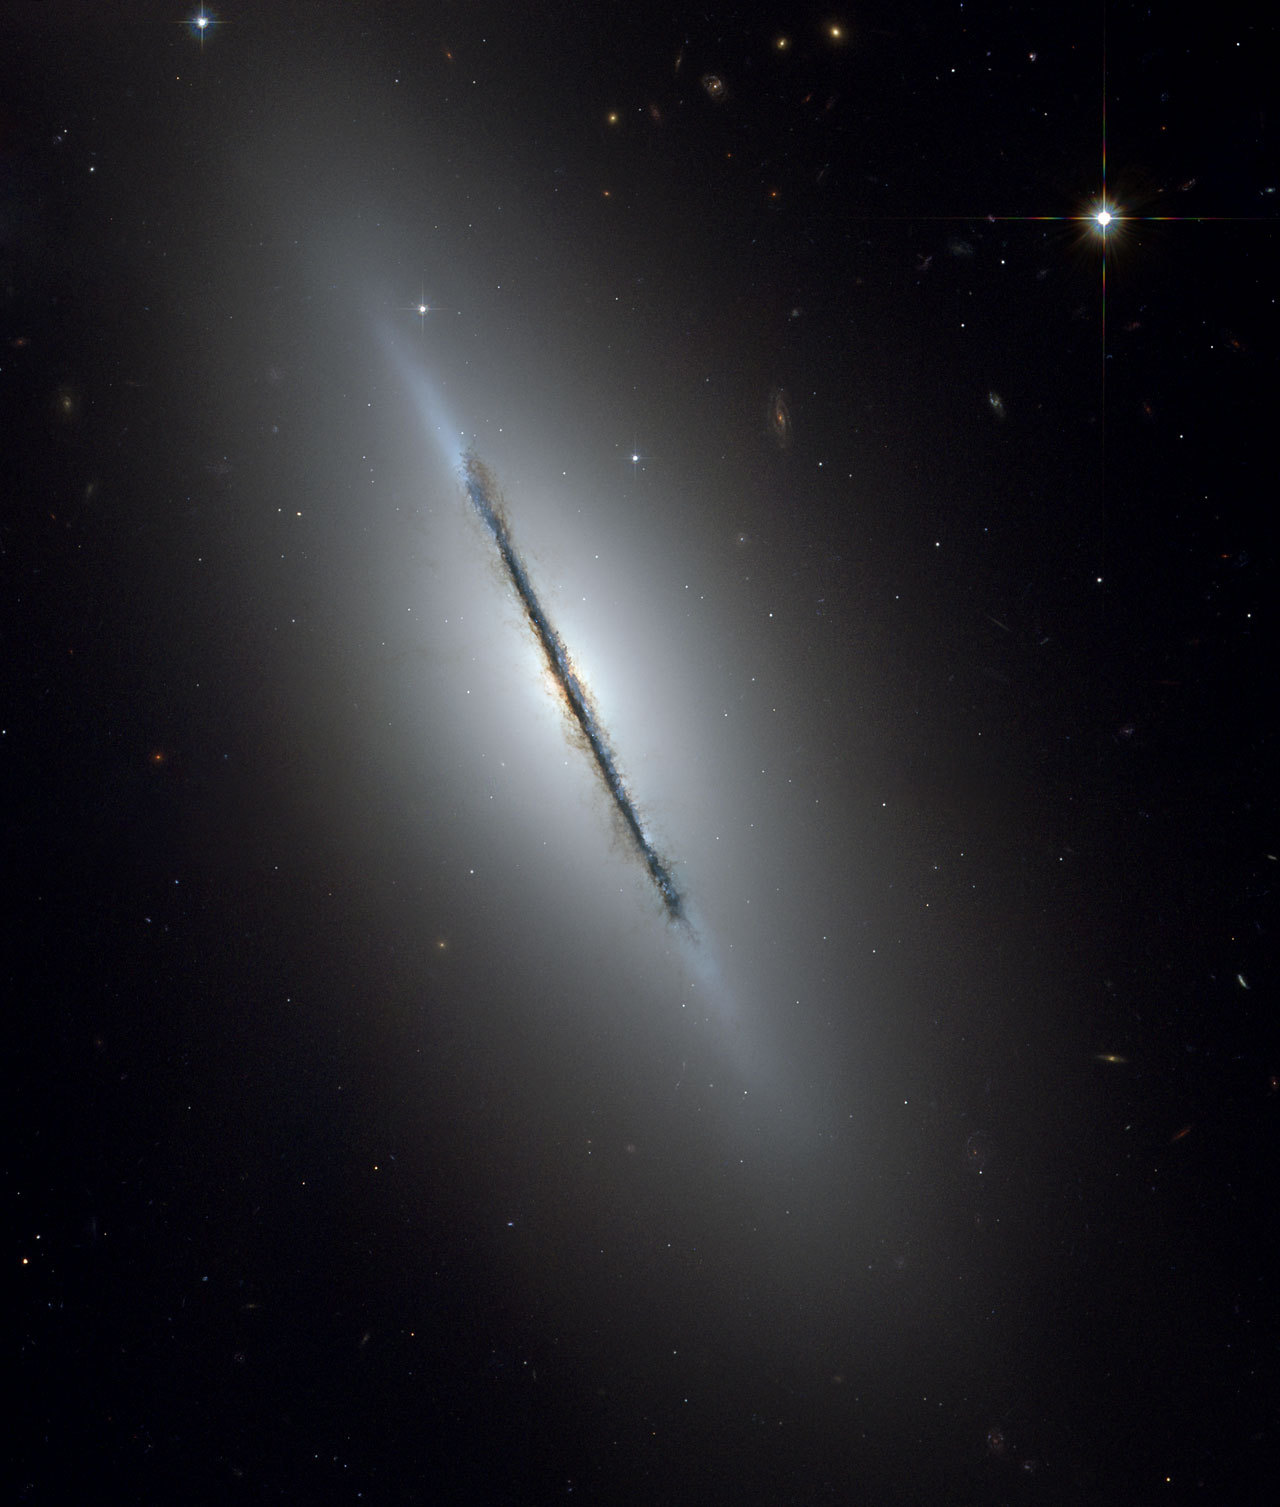 NGC 5866 Credit: NASA, ESA, and The Hubble Heritage Team STScI/AURA)